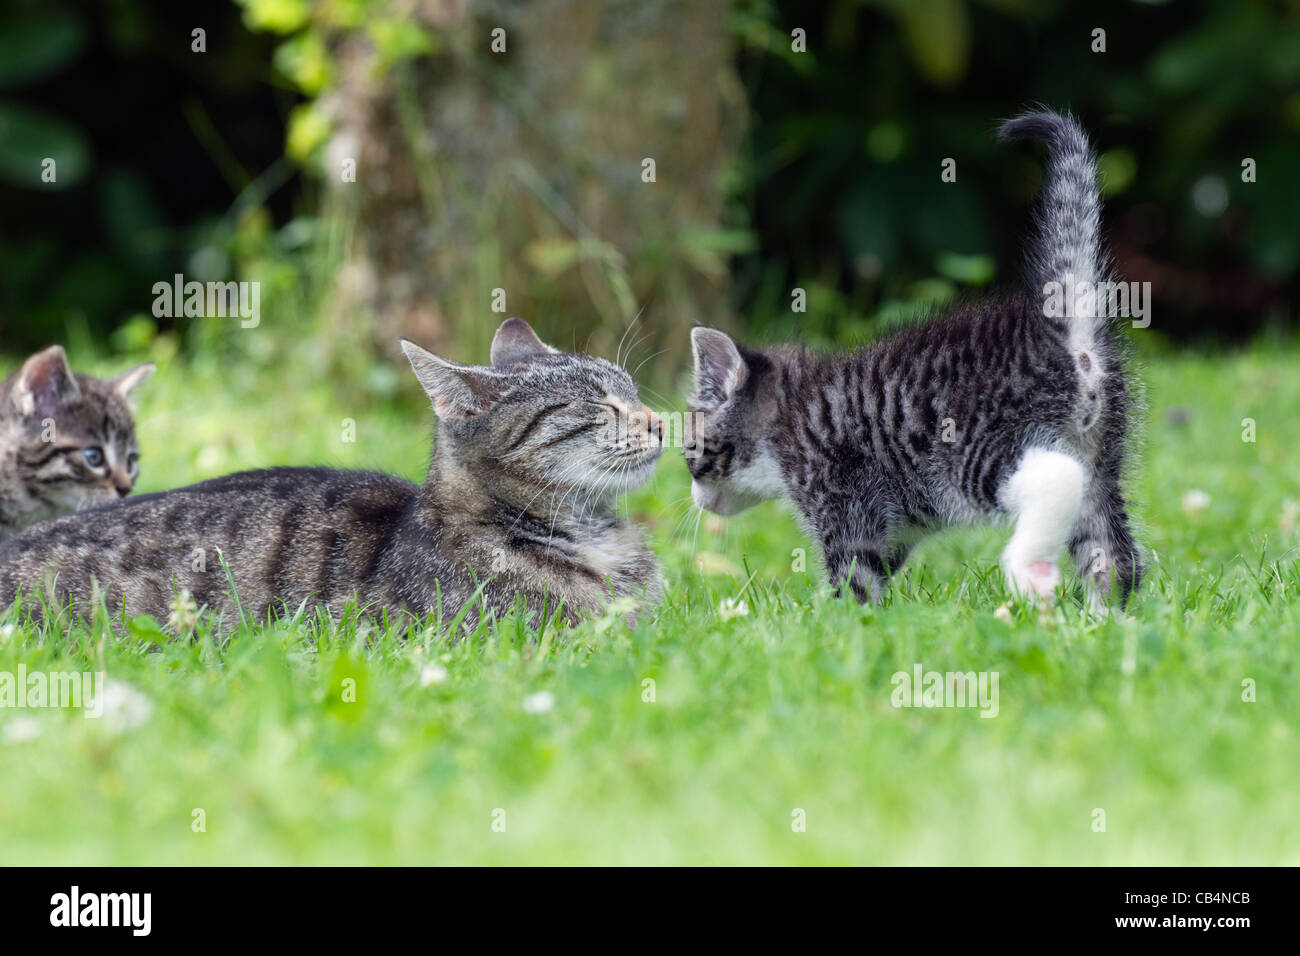 Cat and Kitten, greeting each other in garden, Lower Saxony, Germany - Stock Image